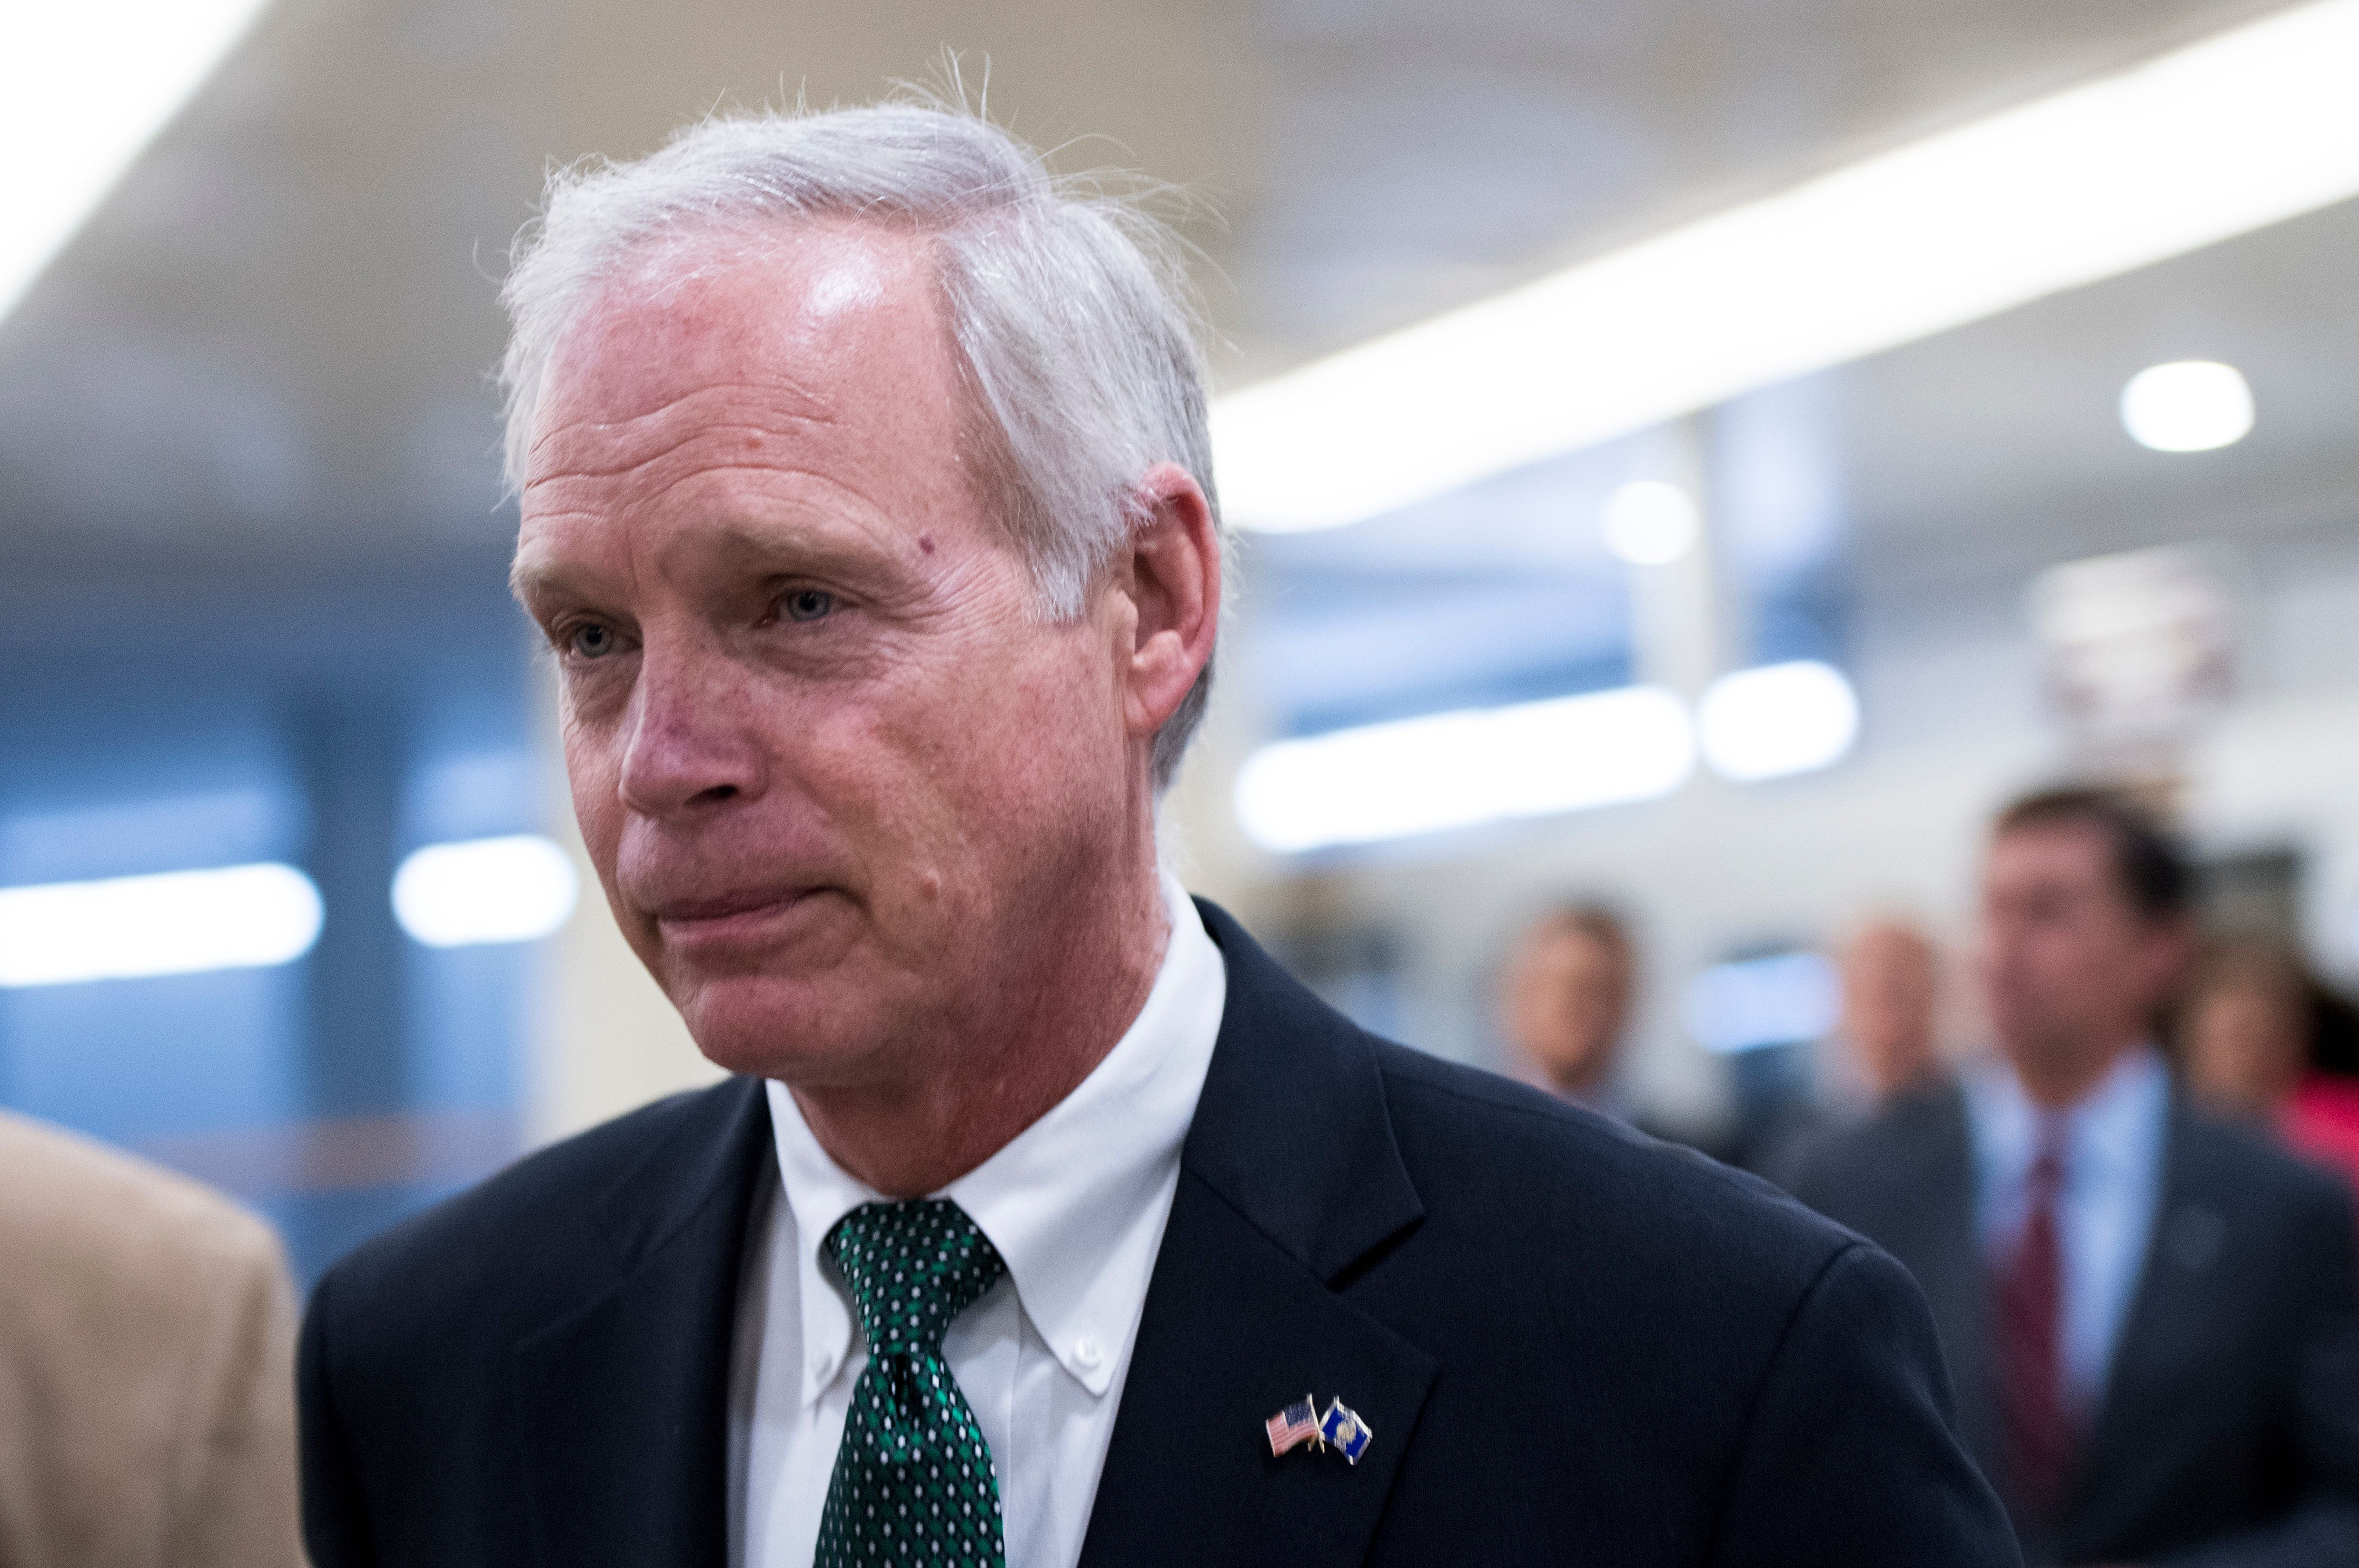 Sen. Ron Johnson (R-Wis.) arrives in the Capitol for a vote on Sept. 15, 2016.